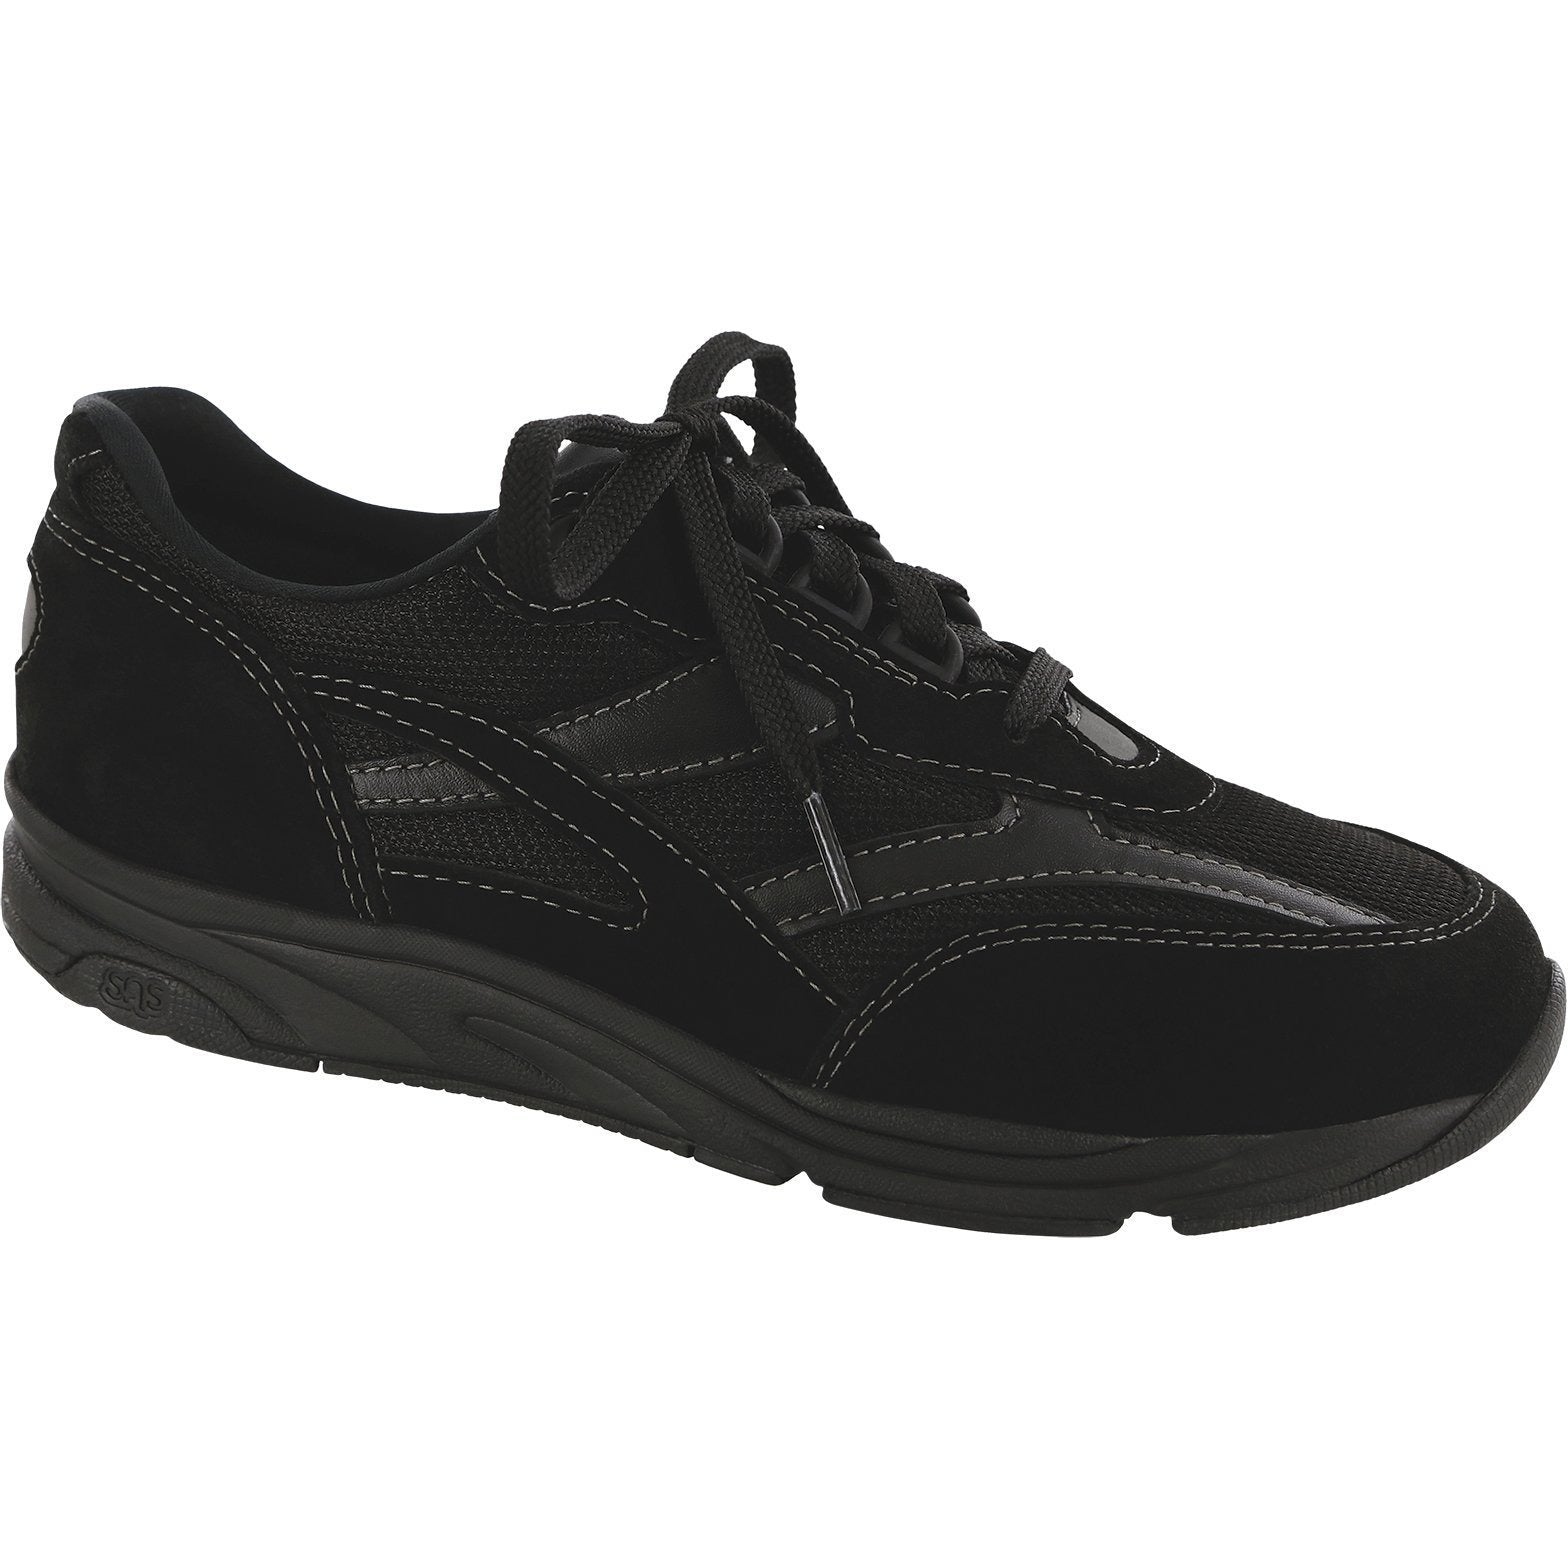 Tour Mesh Black by SAS Shoes: Comfort Women's Shoes